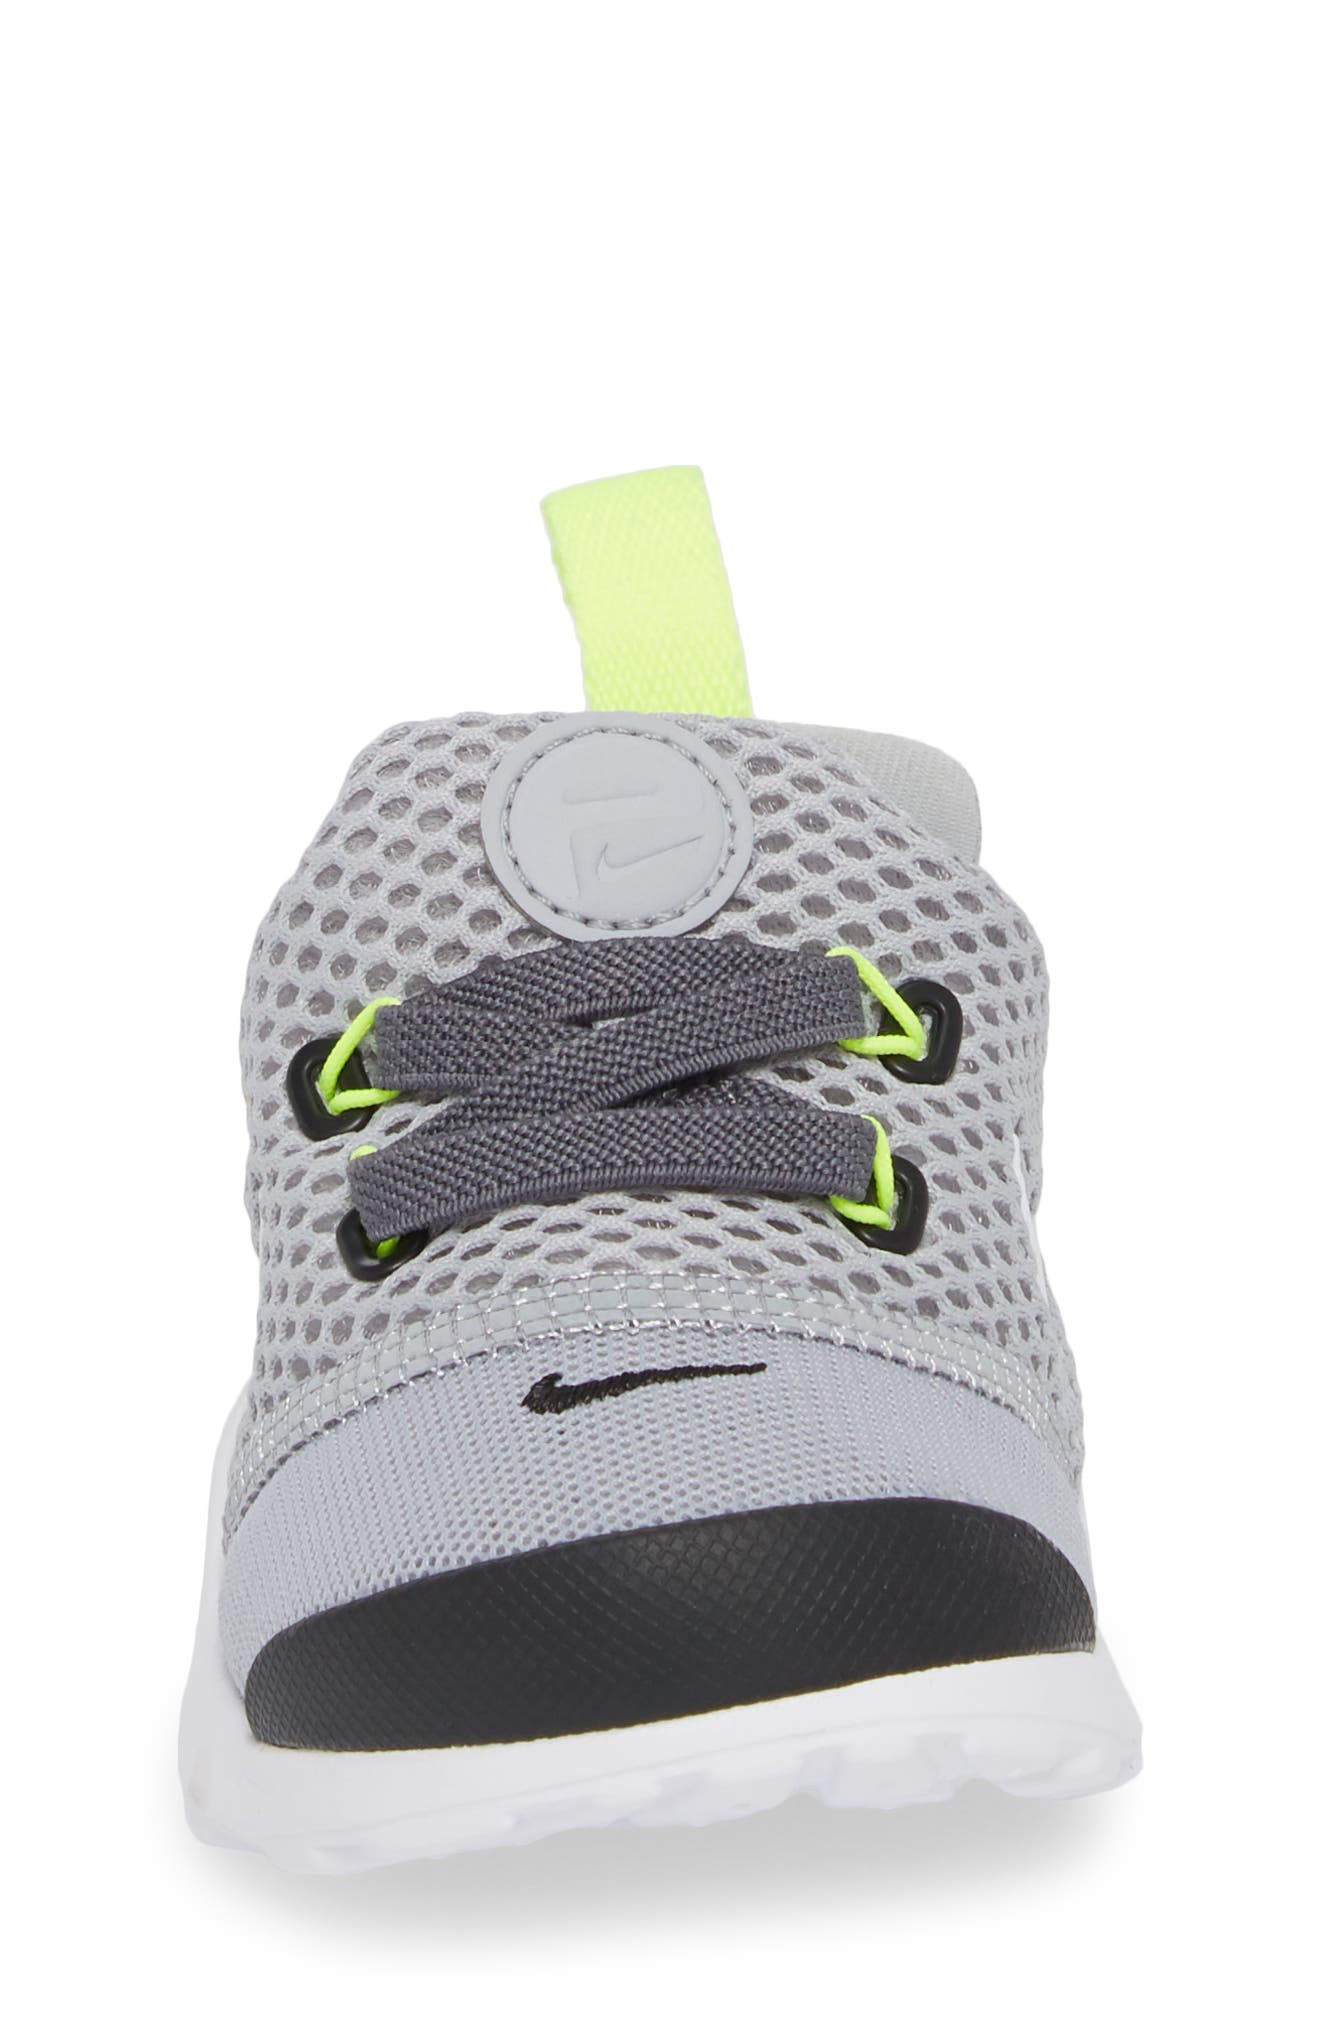 Presto Fly GS Sneaker,                             Alternate thumbnail 4, color,                             Grey/ White/ Black/ Volt